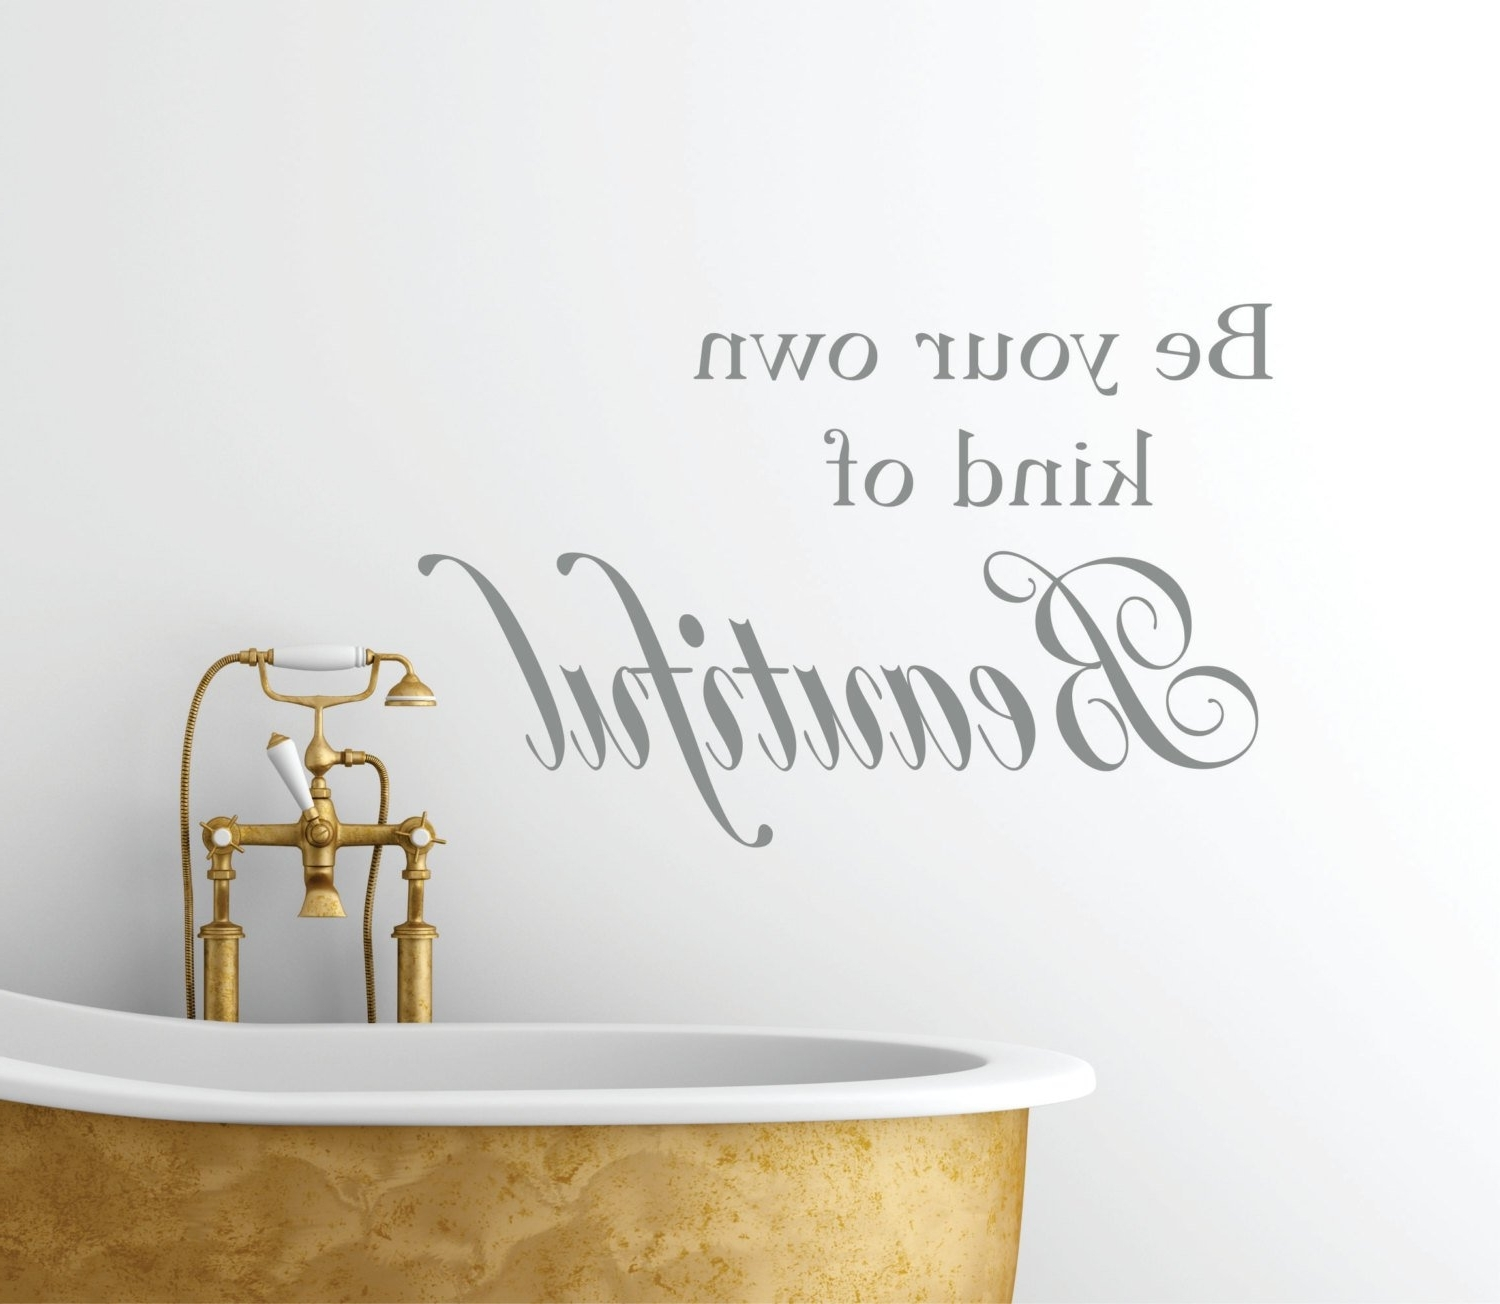 Be Your Own Kind Of Beautiful Vinyl Wall Decal // Bathroom Decor Intended For Most Popular Be Your Own Kind Of Beautiful Wall Art (View 9 of 15)